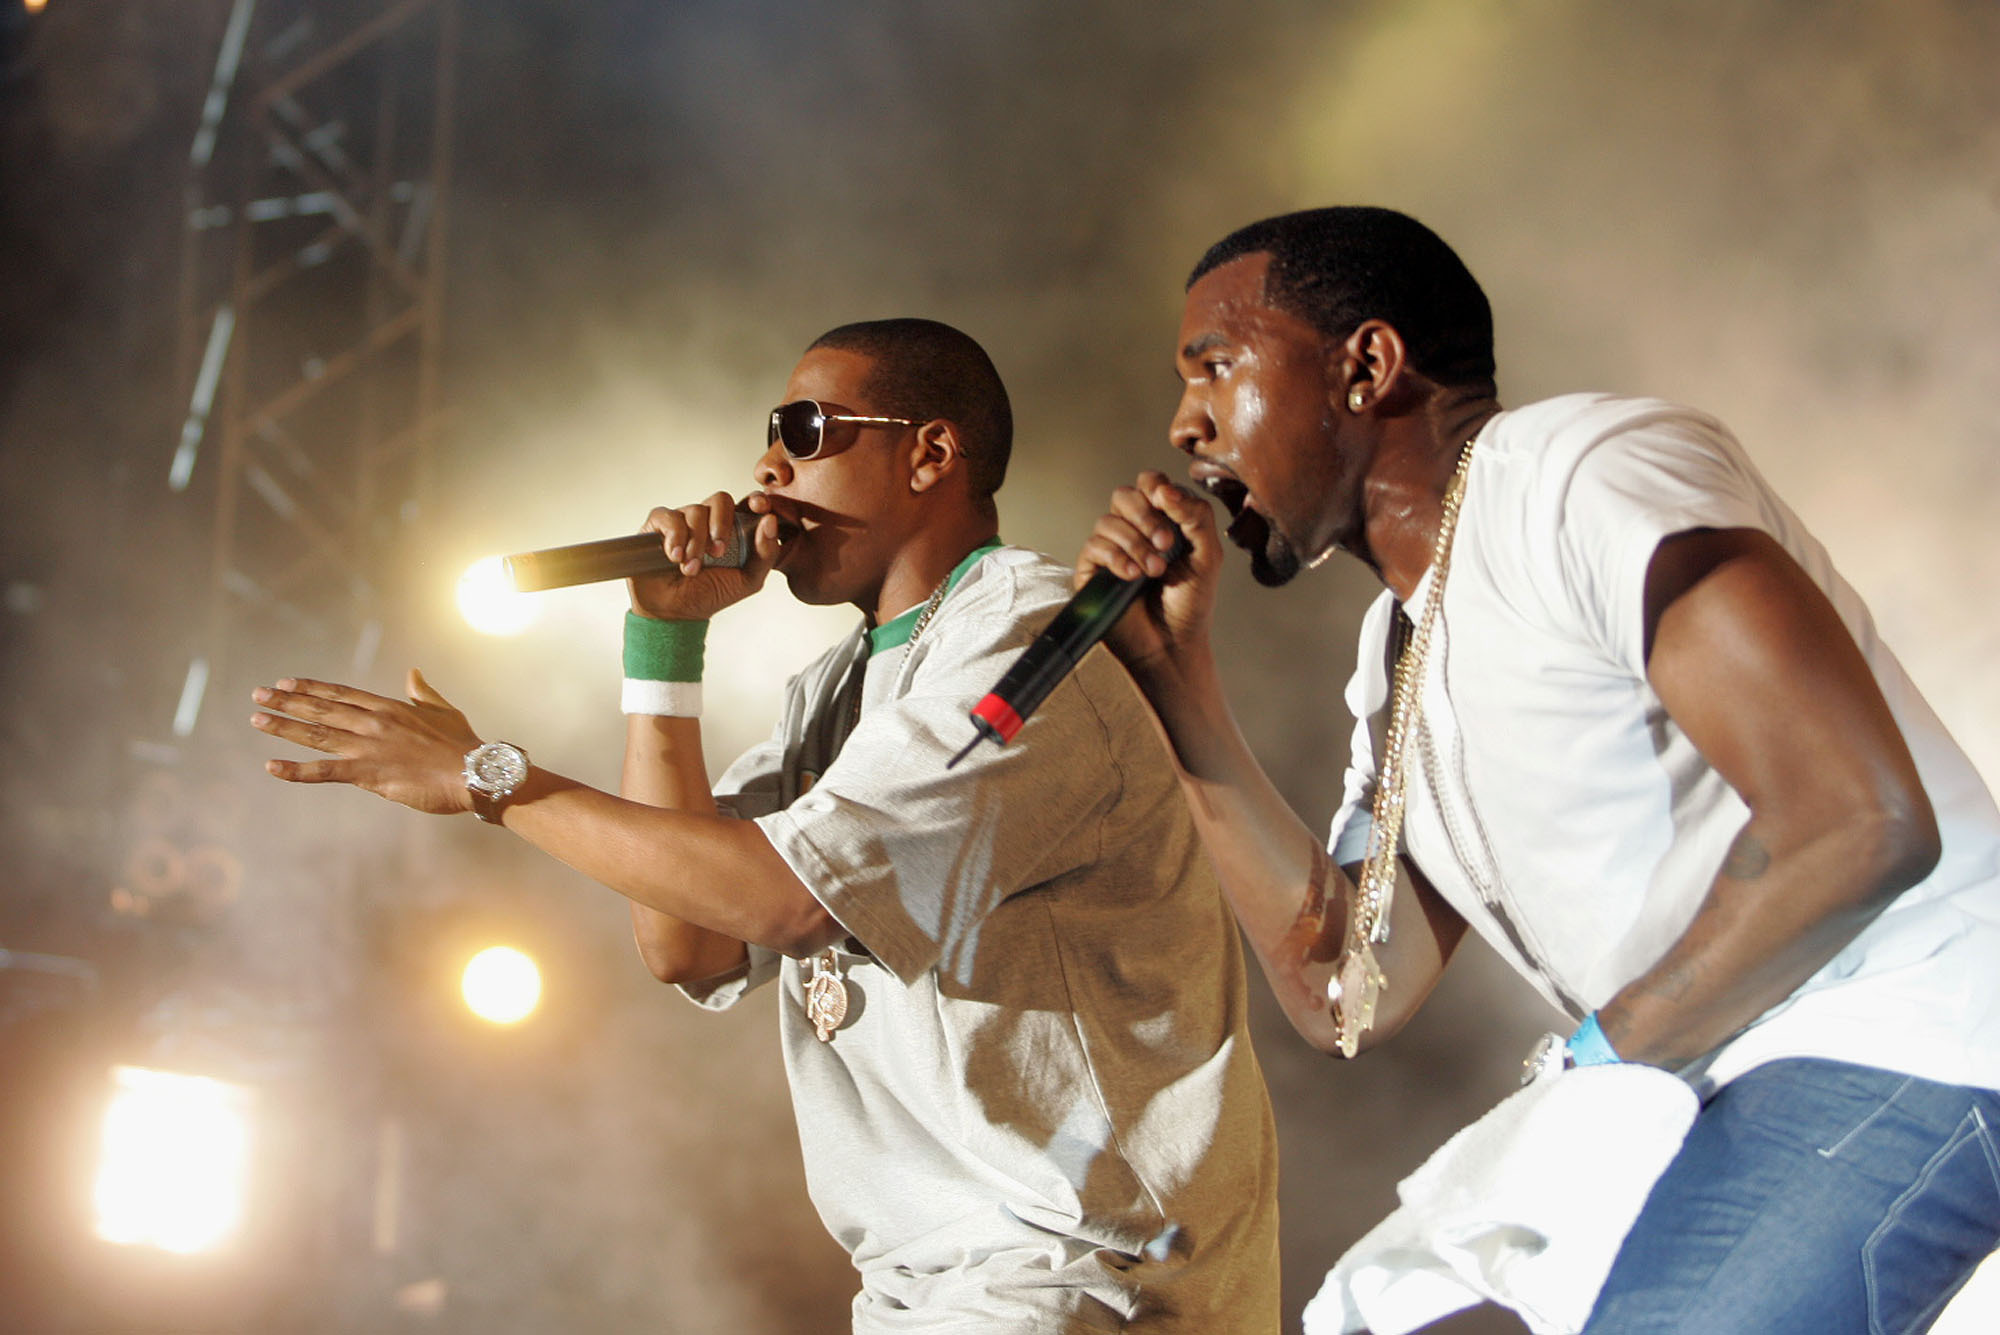 Bad blood between Kanye West and Jay Z?